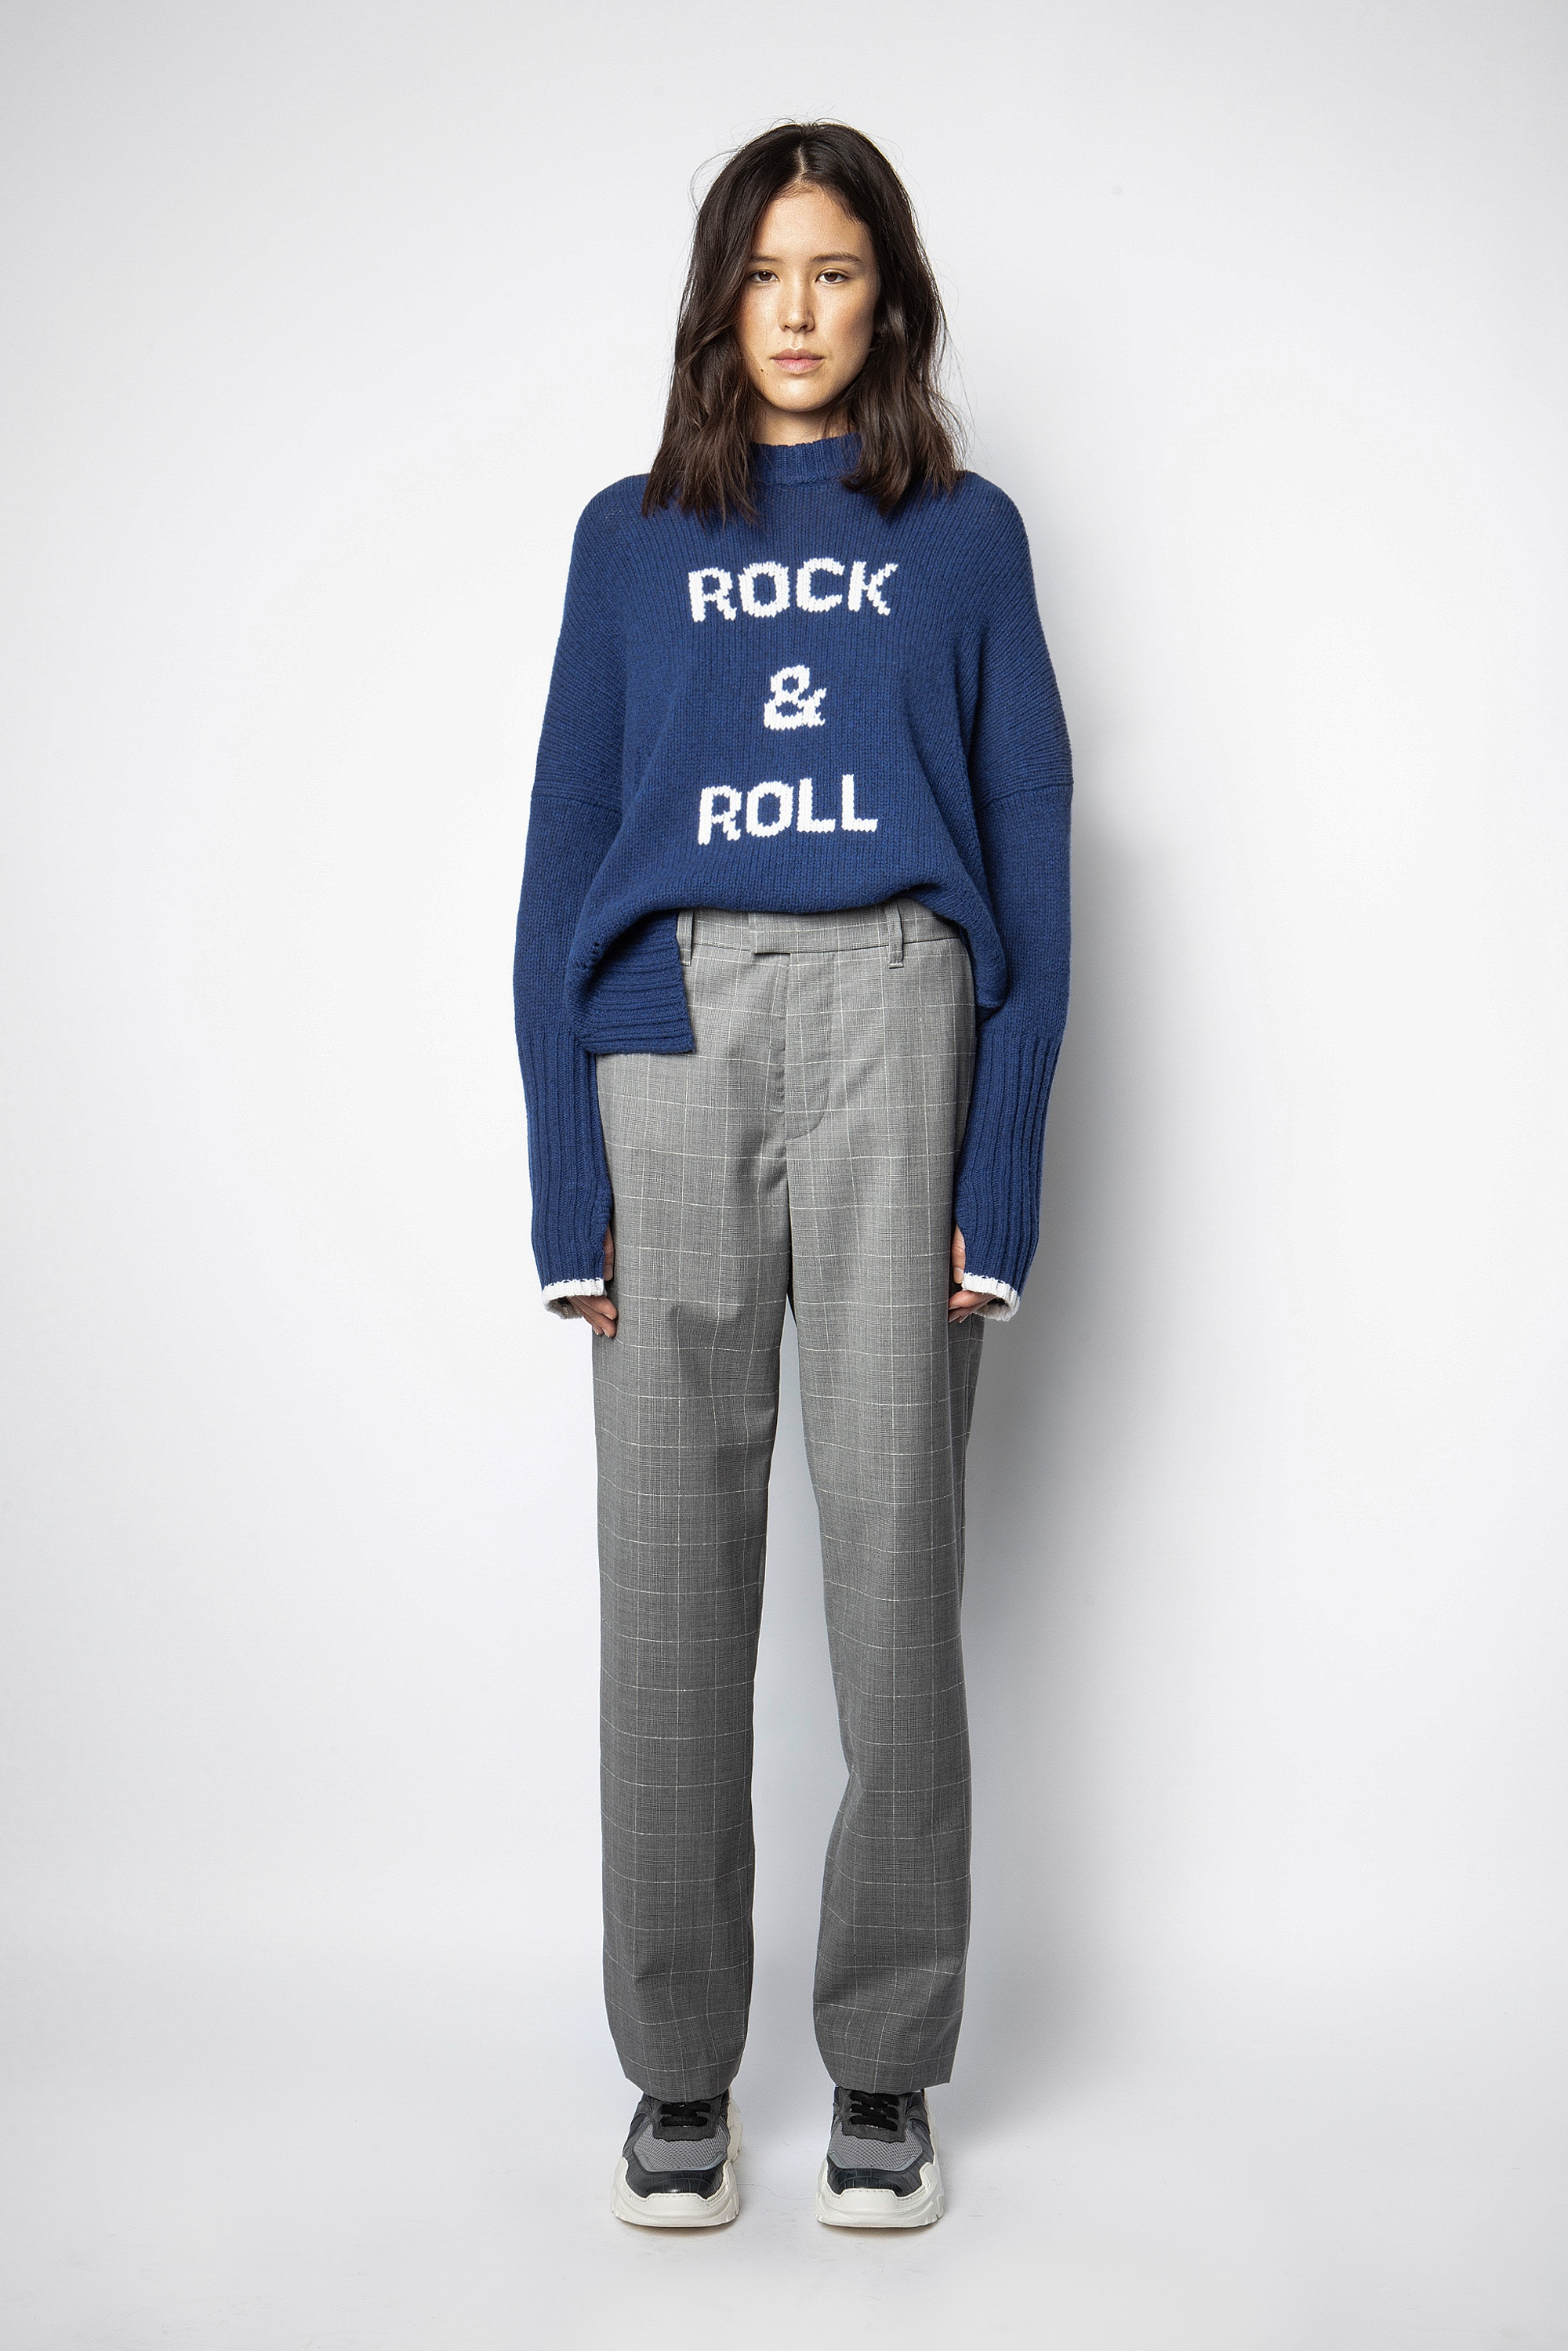 Malta Rock And Roll Sweater